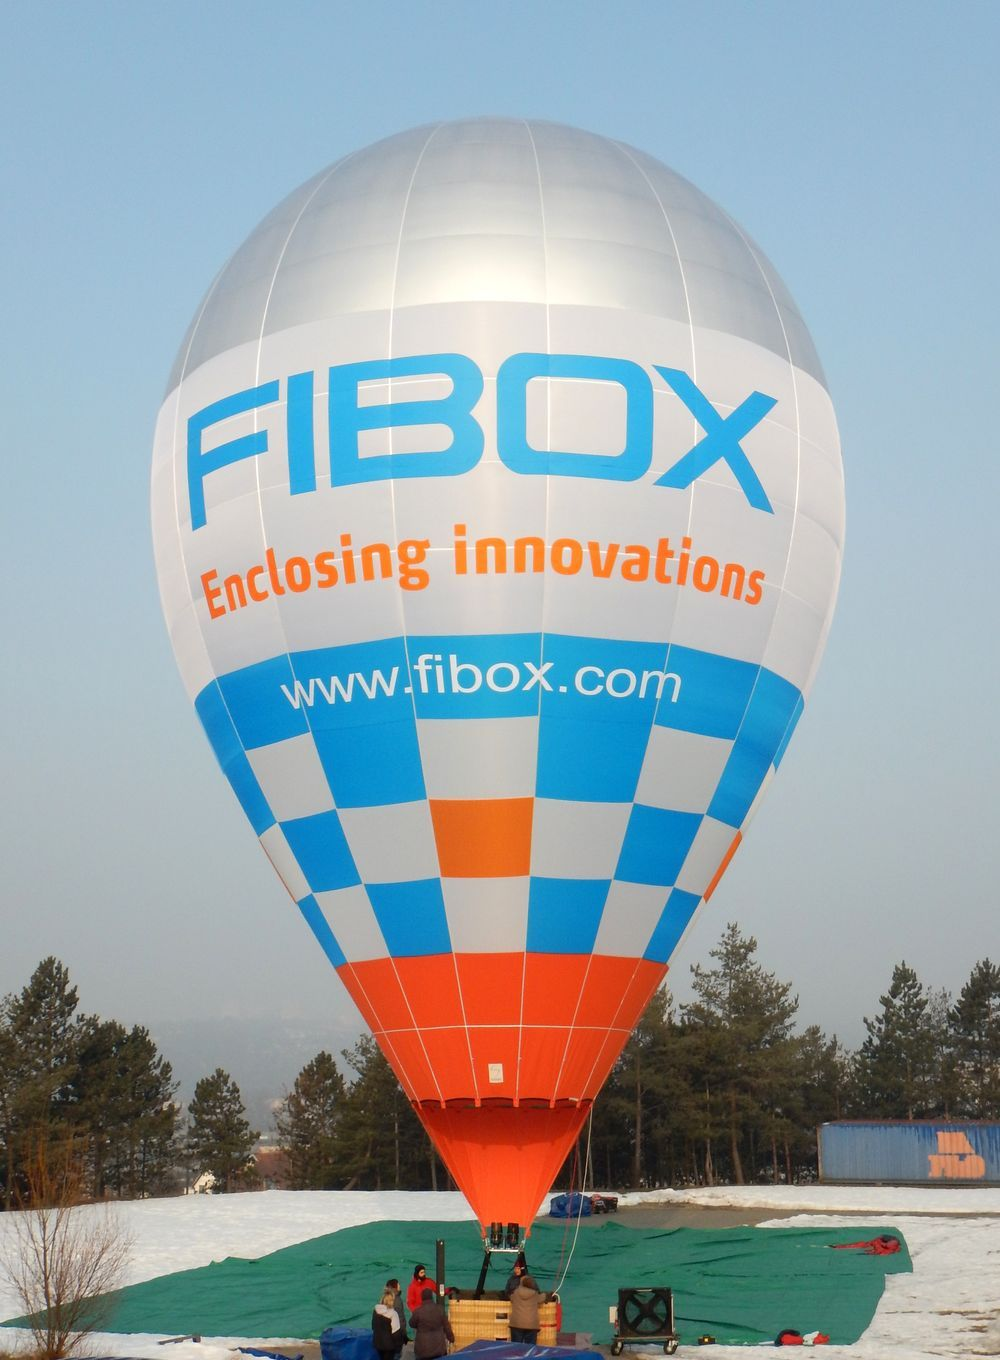 1325_Fibox_BB17XR